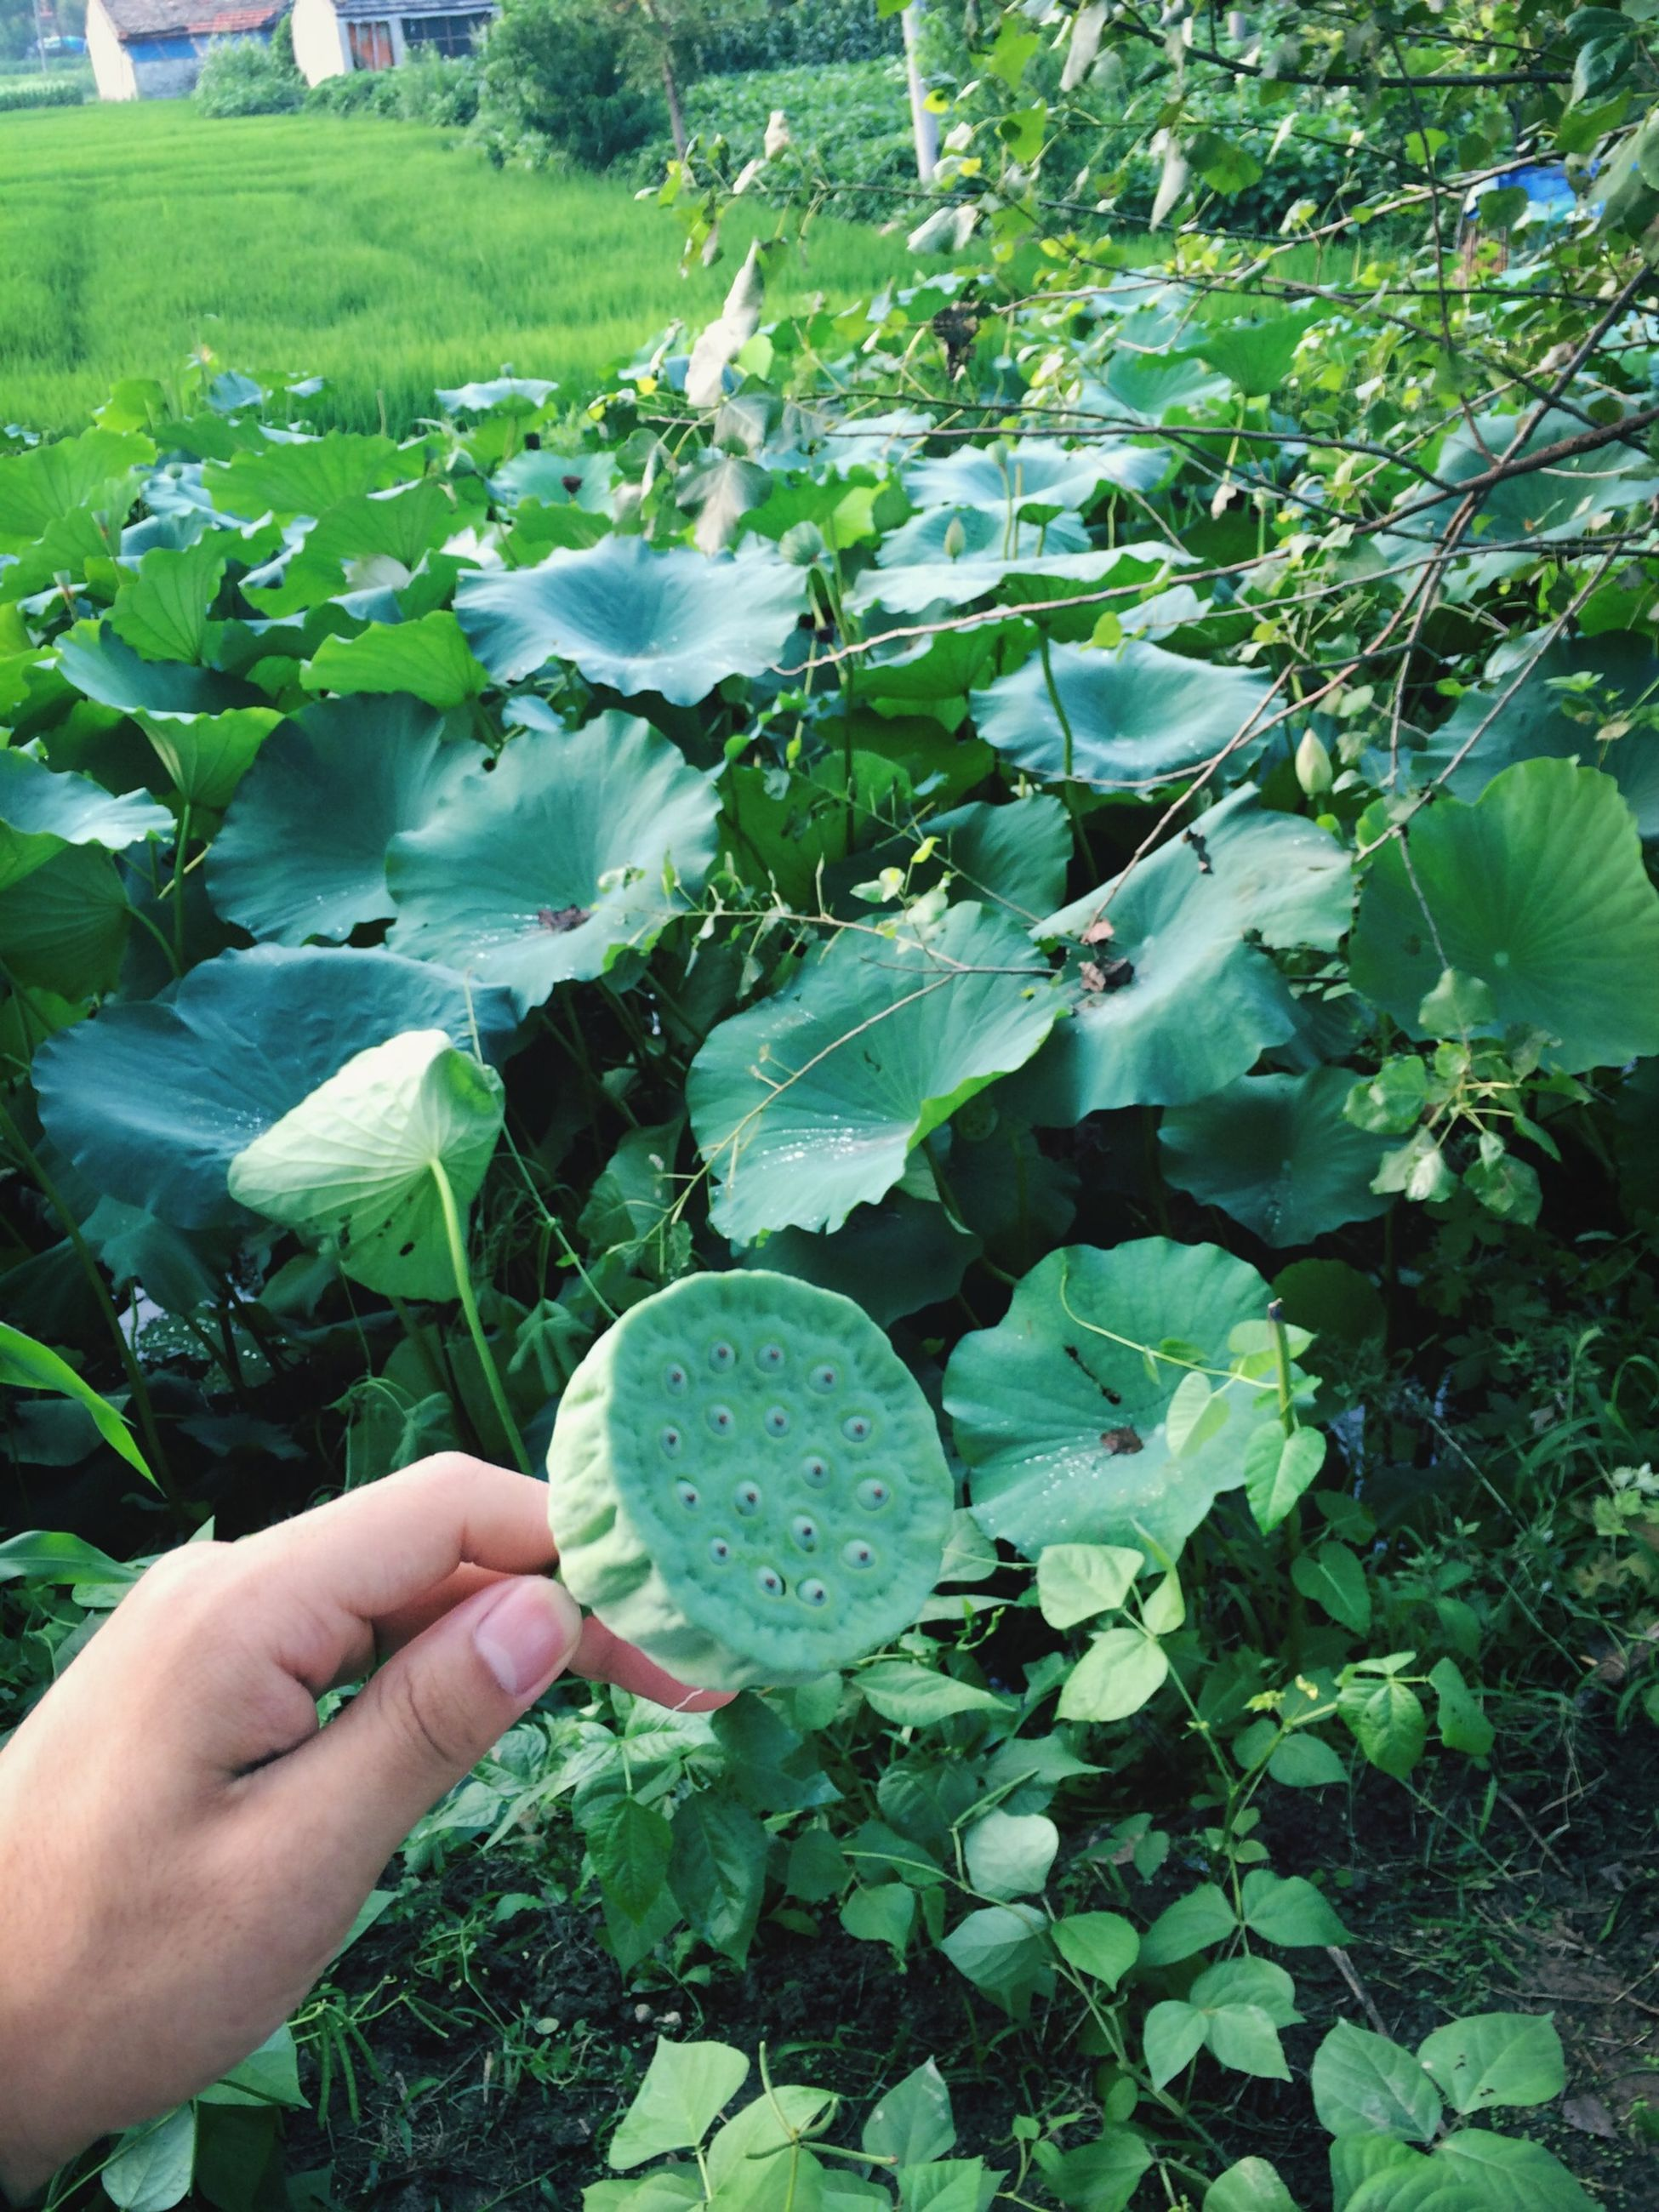 person, green color, holding, leaf, plant, growth, freshness, part of, cropped, personal perspective, unrecognizable person, food and drink, nature, lifestyles, human finger, leisure activity, close-up